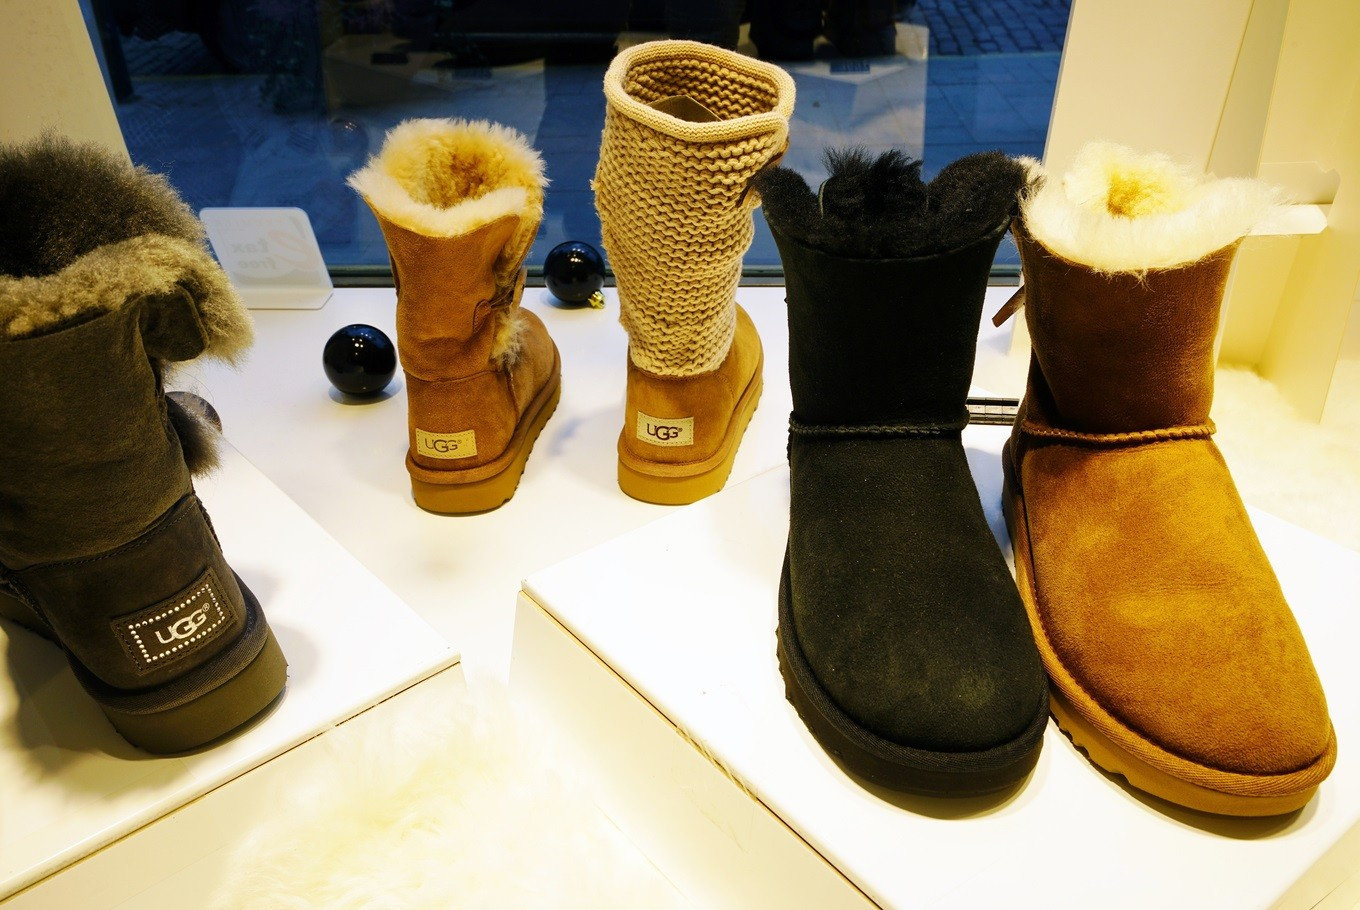 e389d6eb3e6 Maker of Ugg boots, Teva sandals may put itself up for sale ...